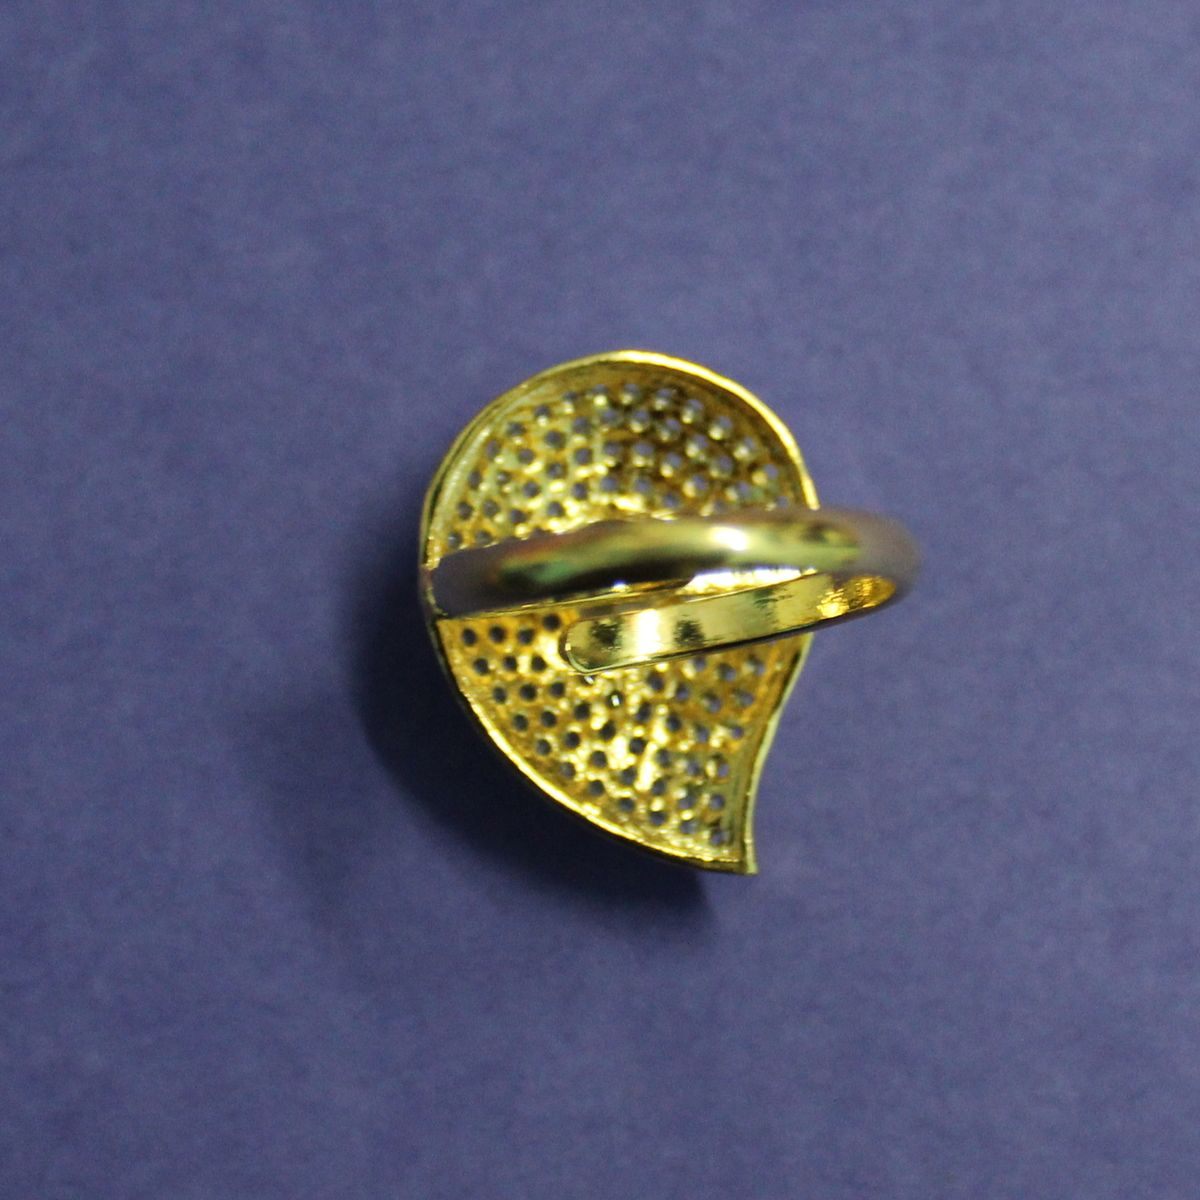 American Diamond Ring with Yellow Stone and Adjustable Ring Size